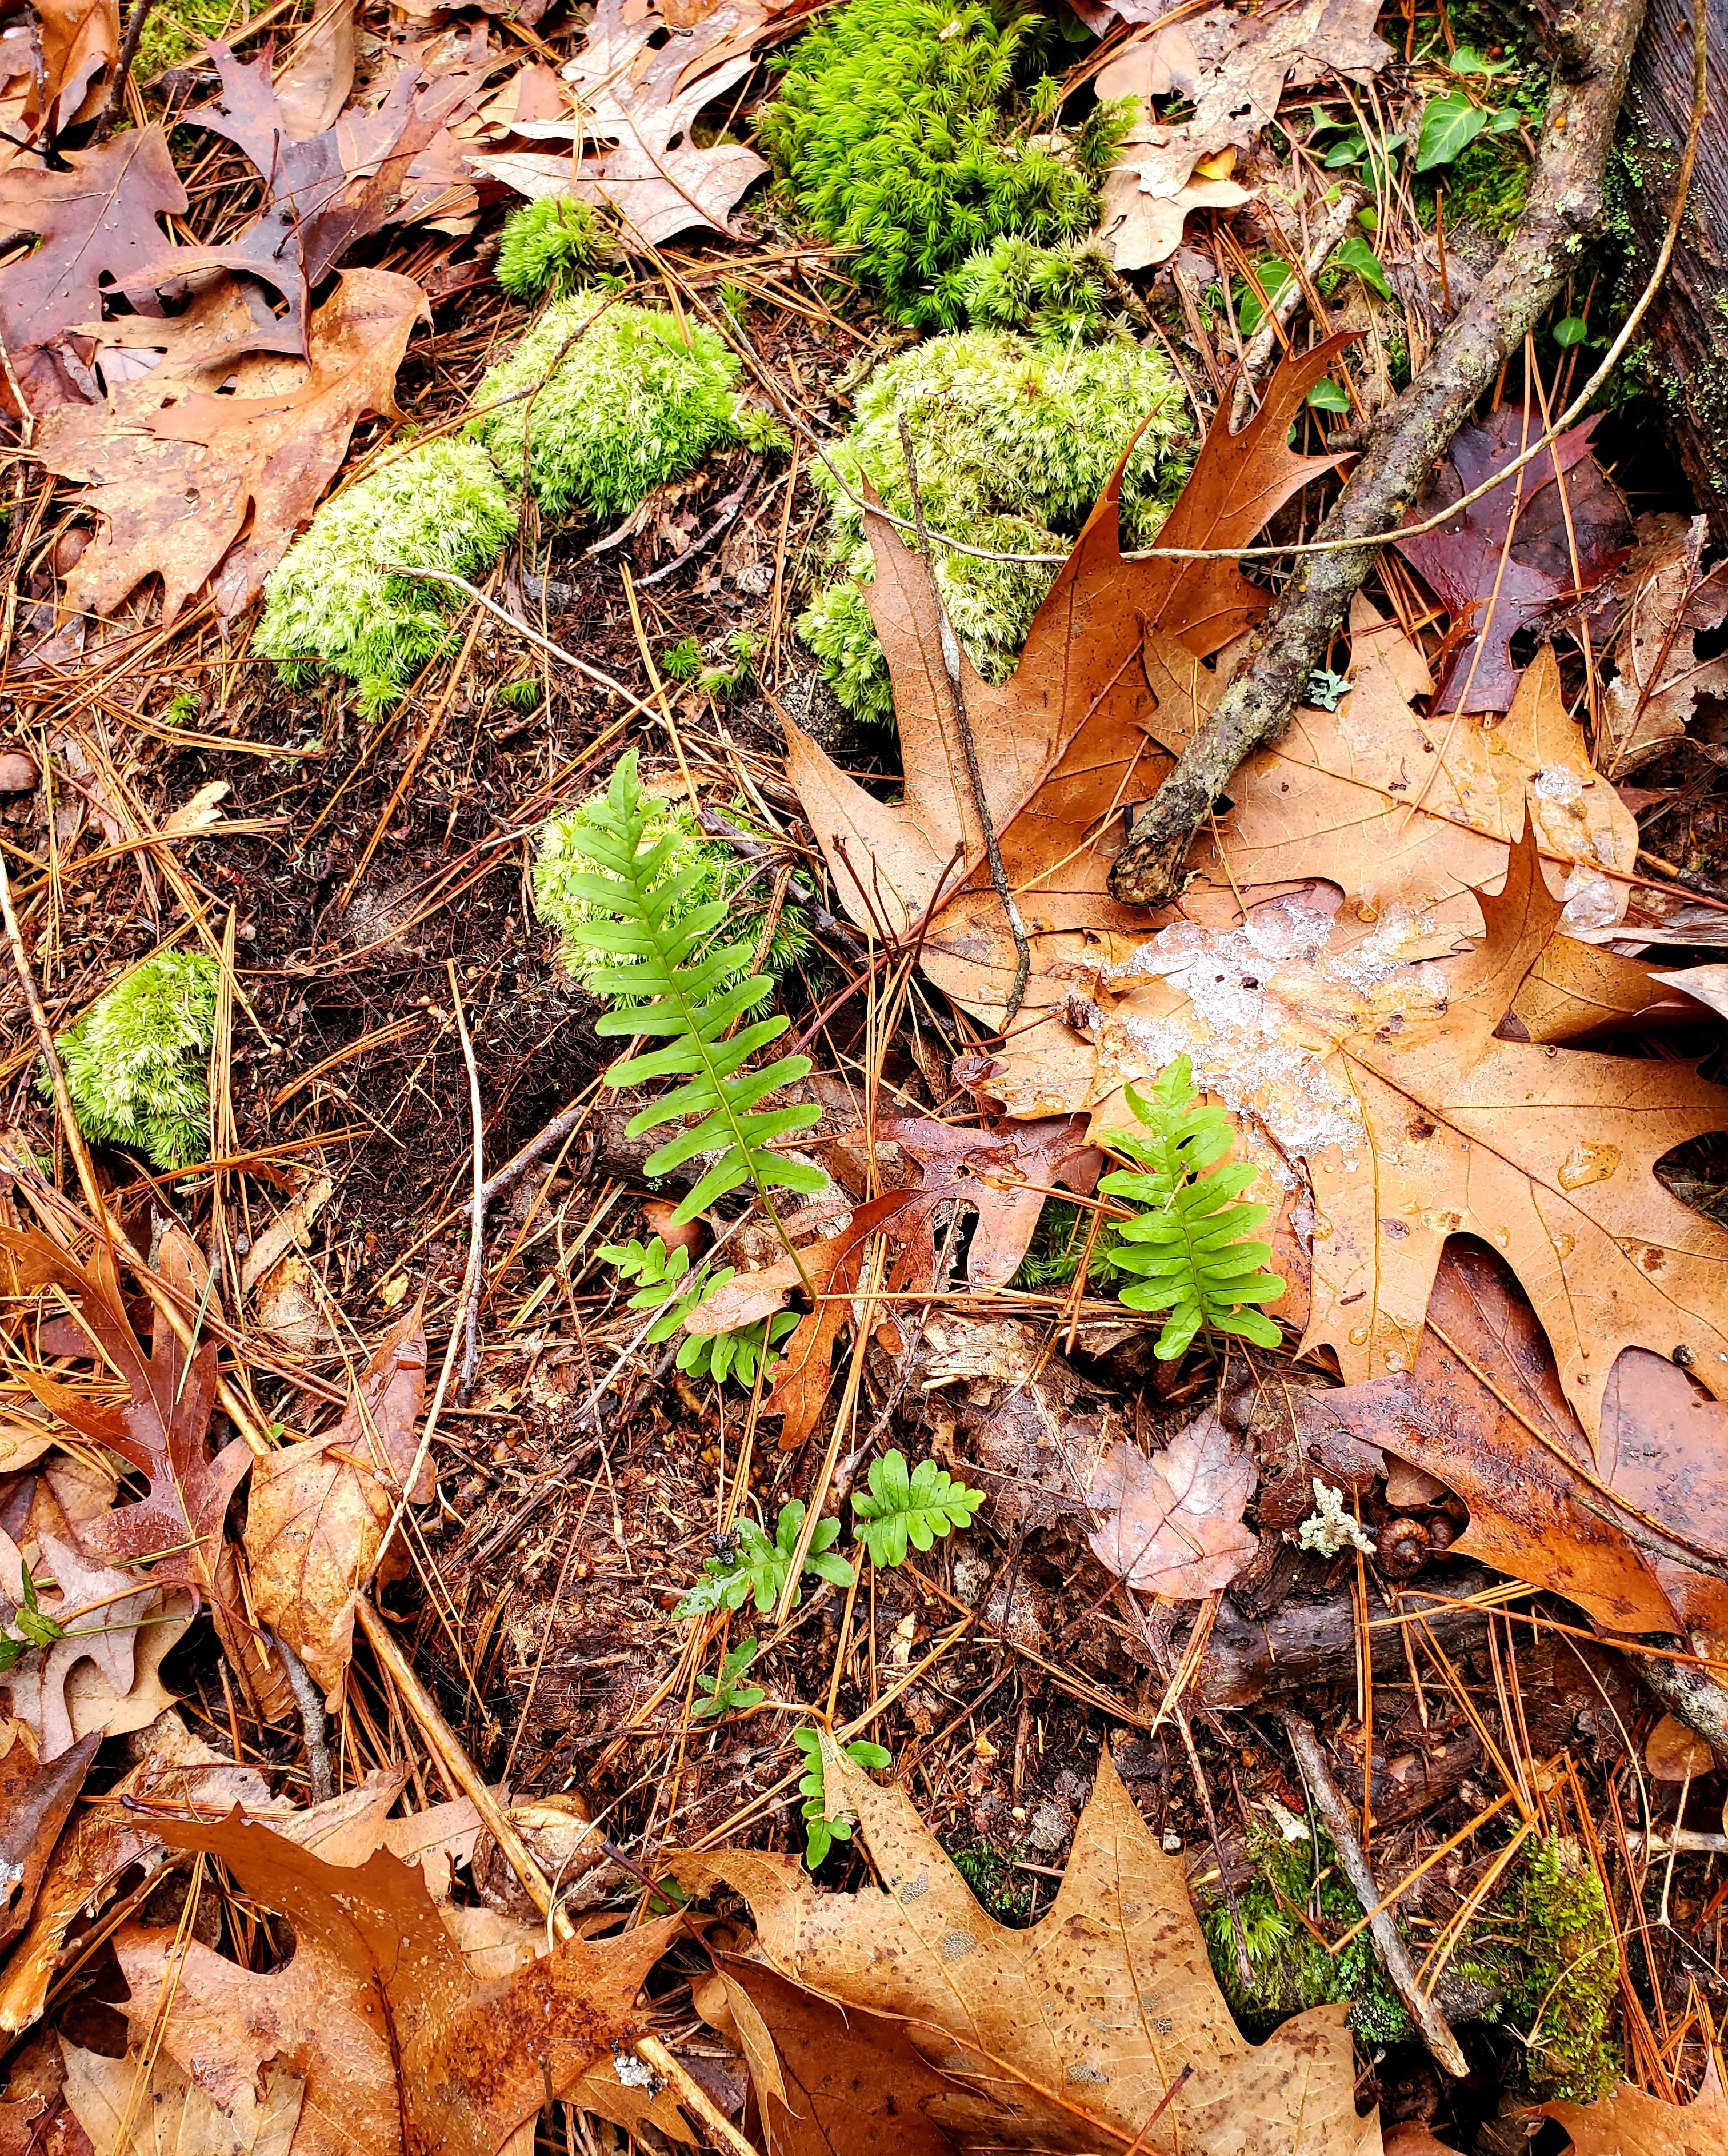 ferns poking up through the leaves